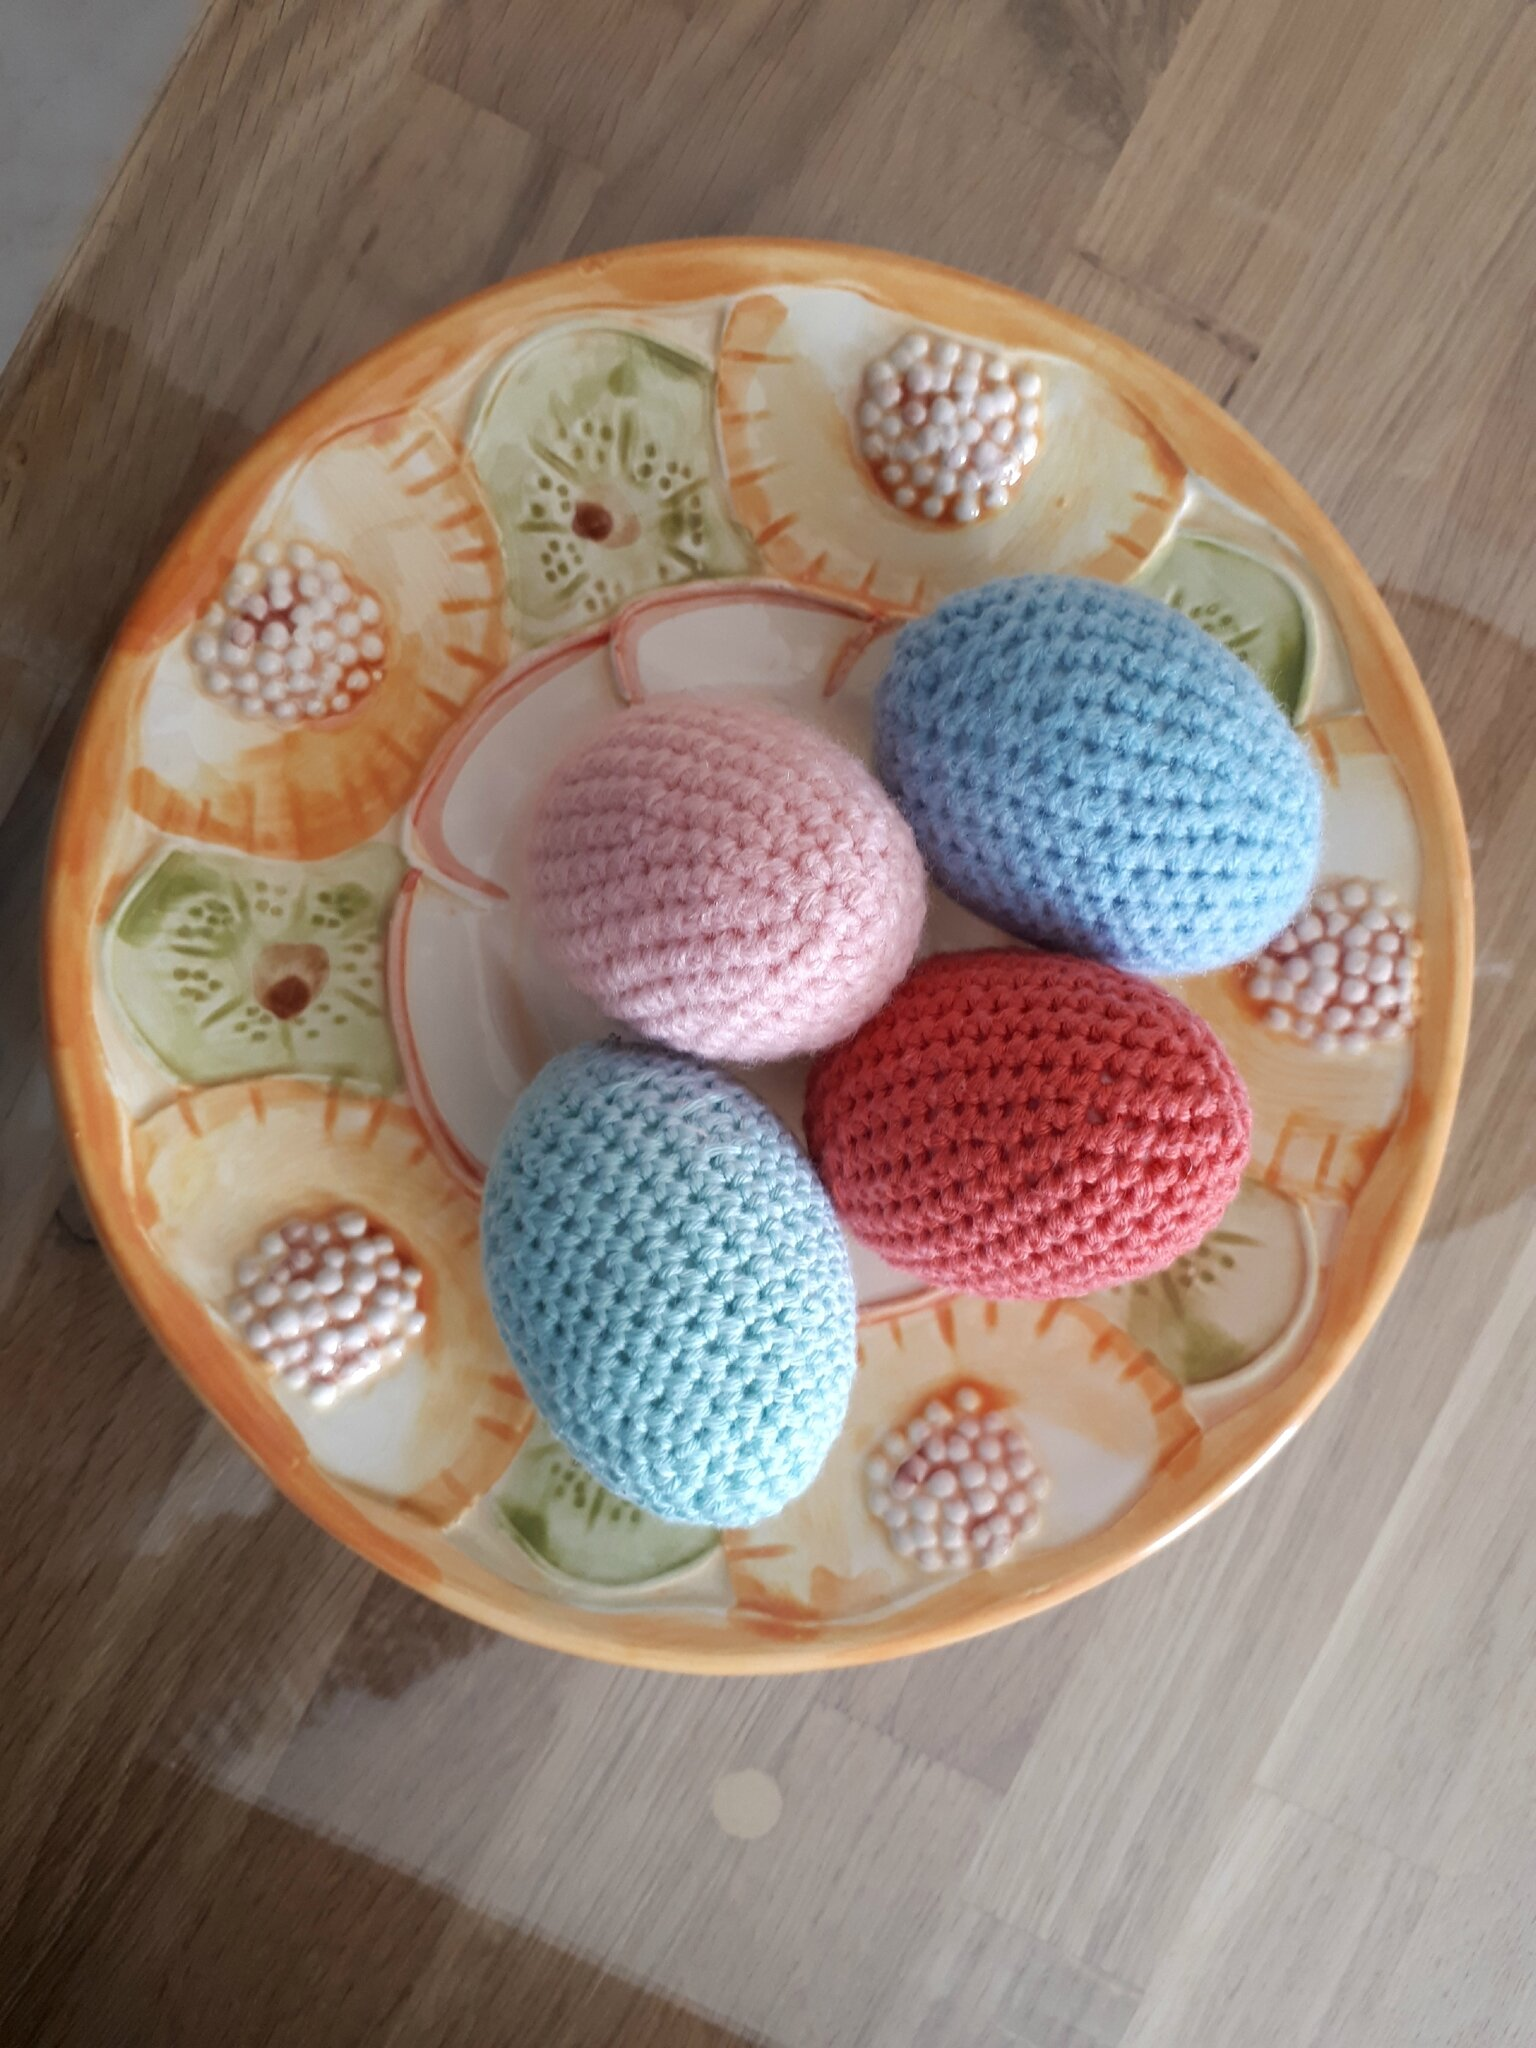 Oeufs au crochet Mollie Makes